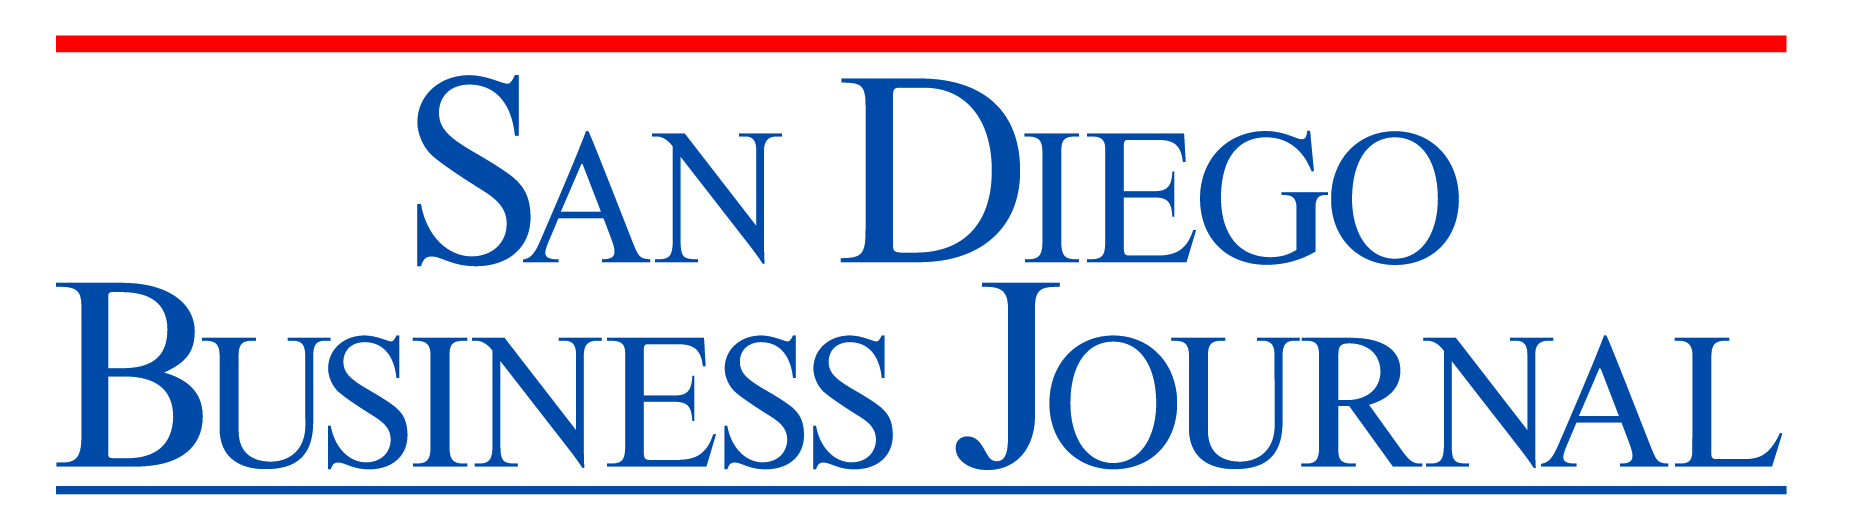 San Diego Business Journal Logo